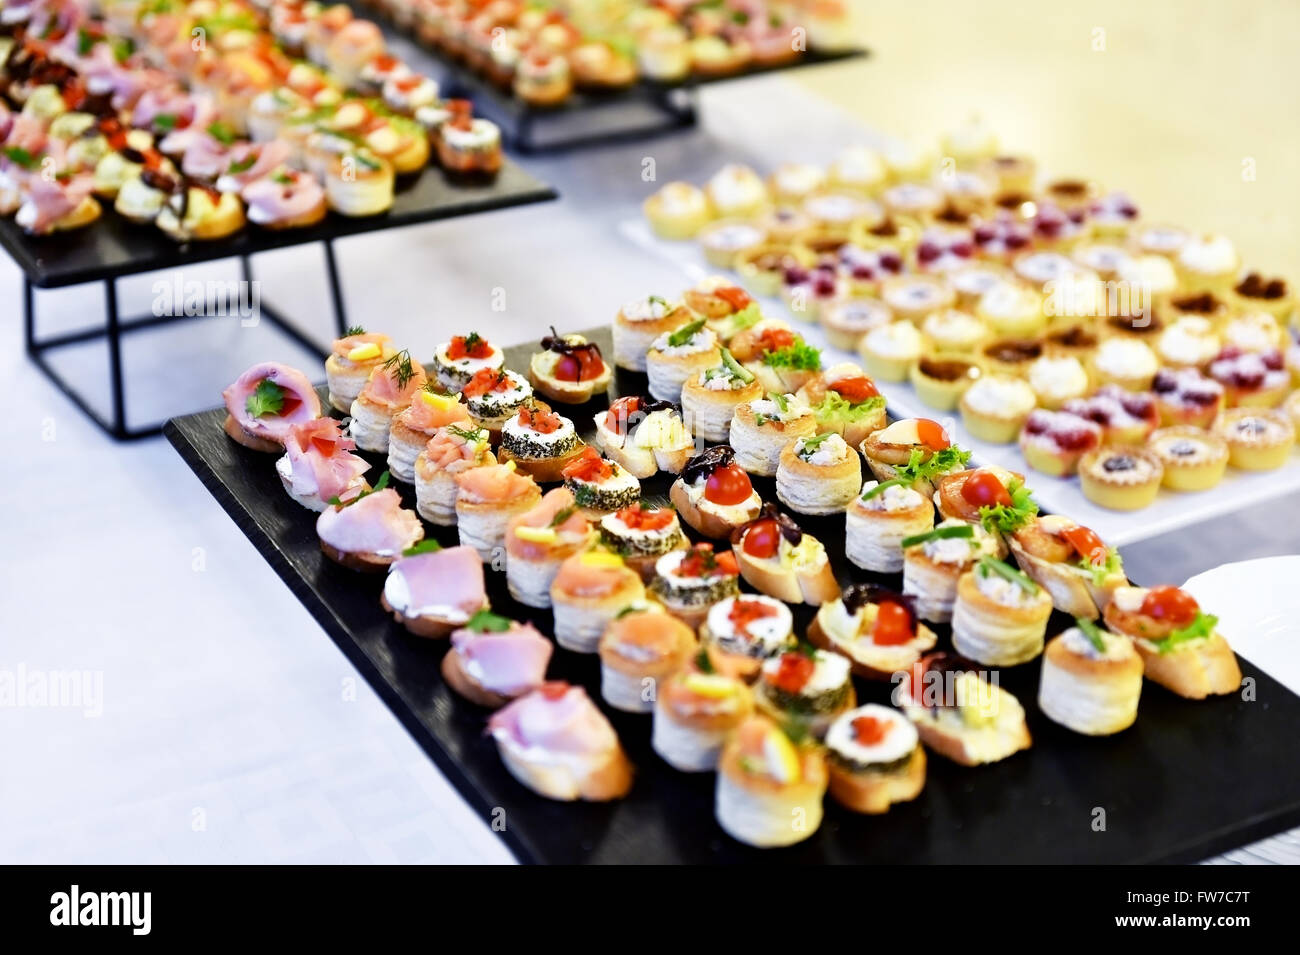 Catering food shot with small appetizers on plates ready for eat - Stock Image